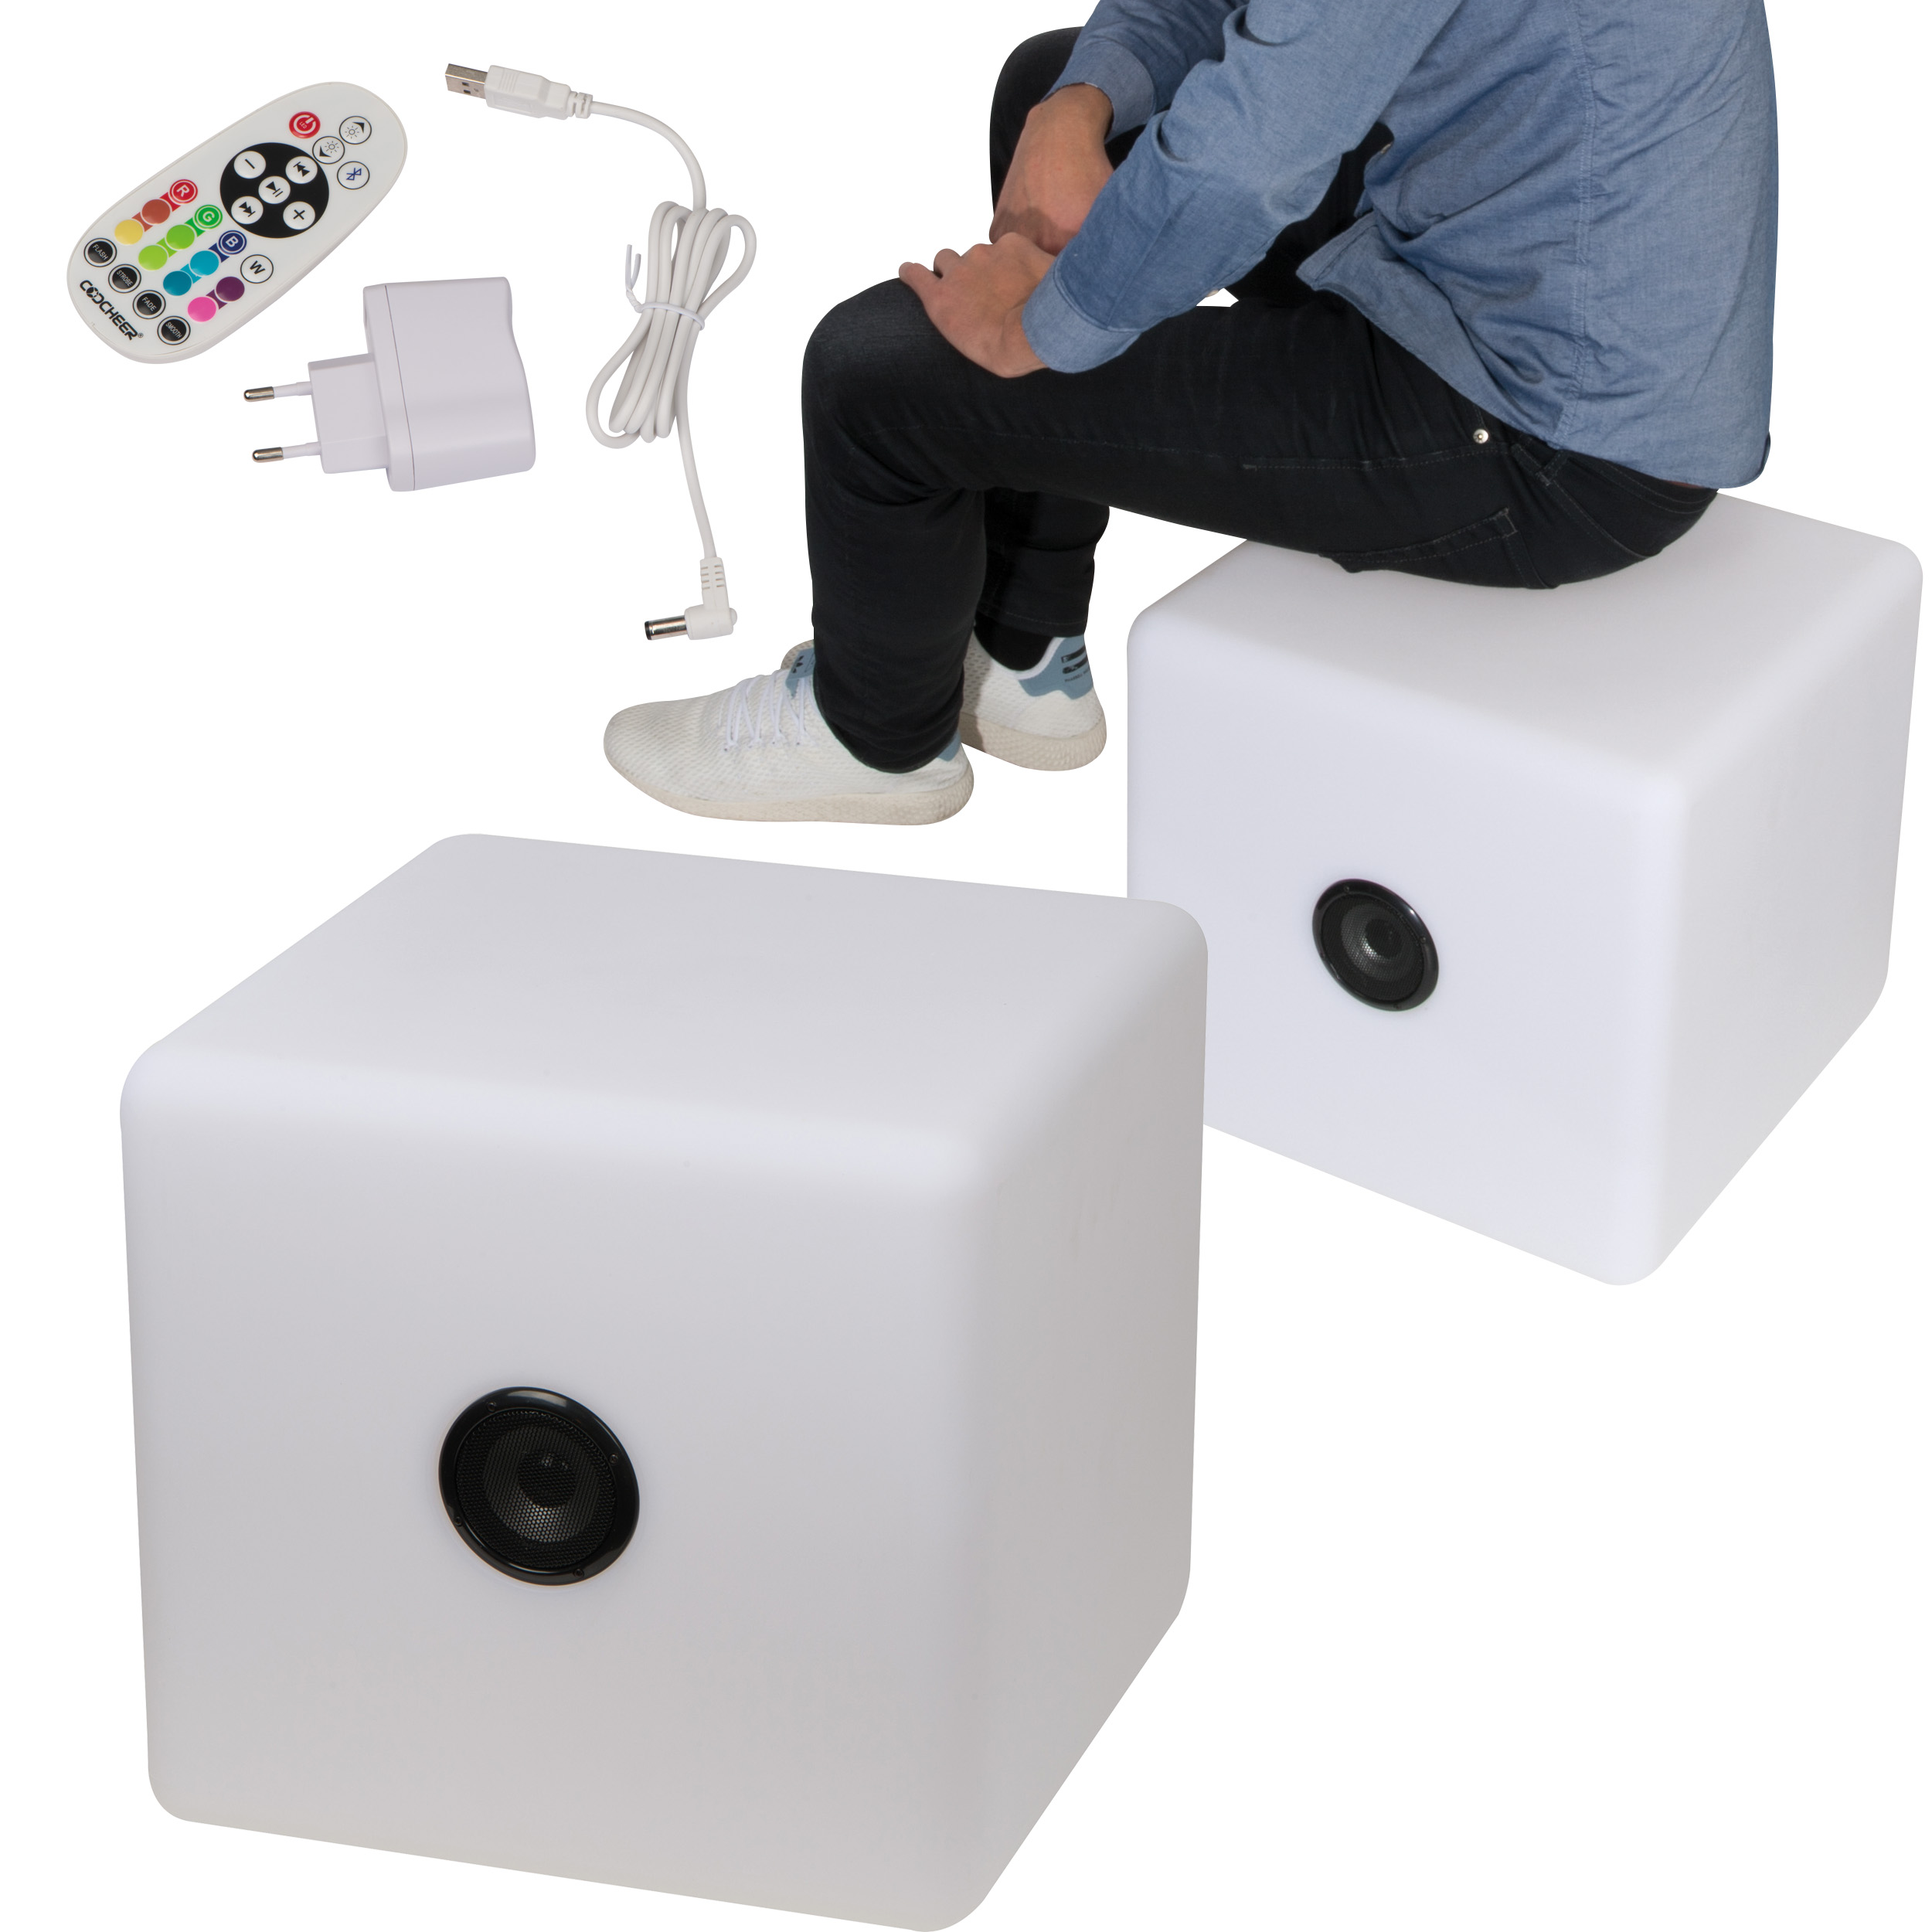 Coulour changing LED speaker